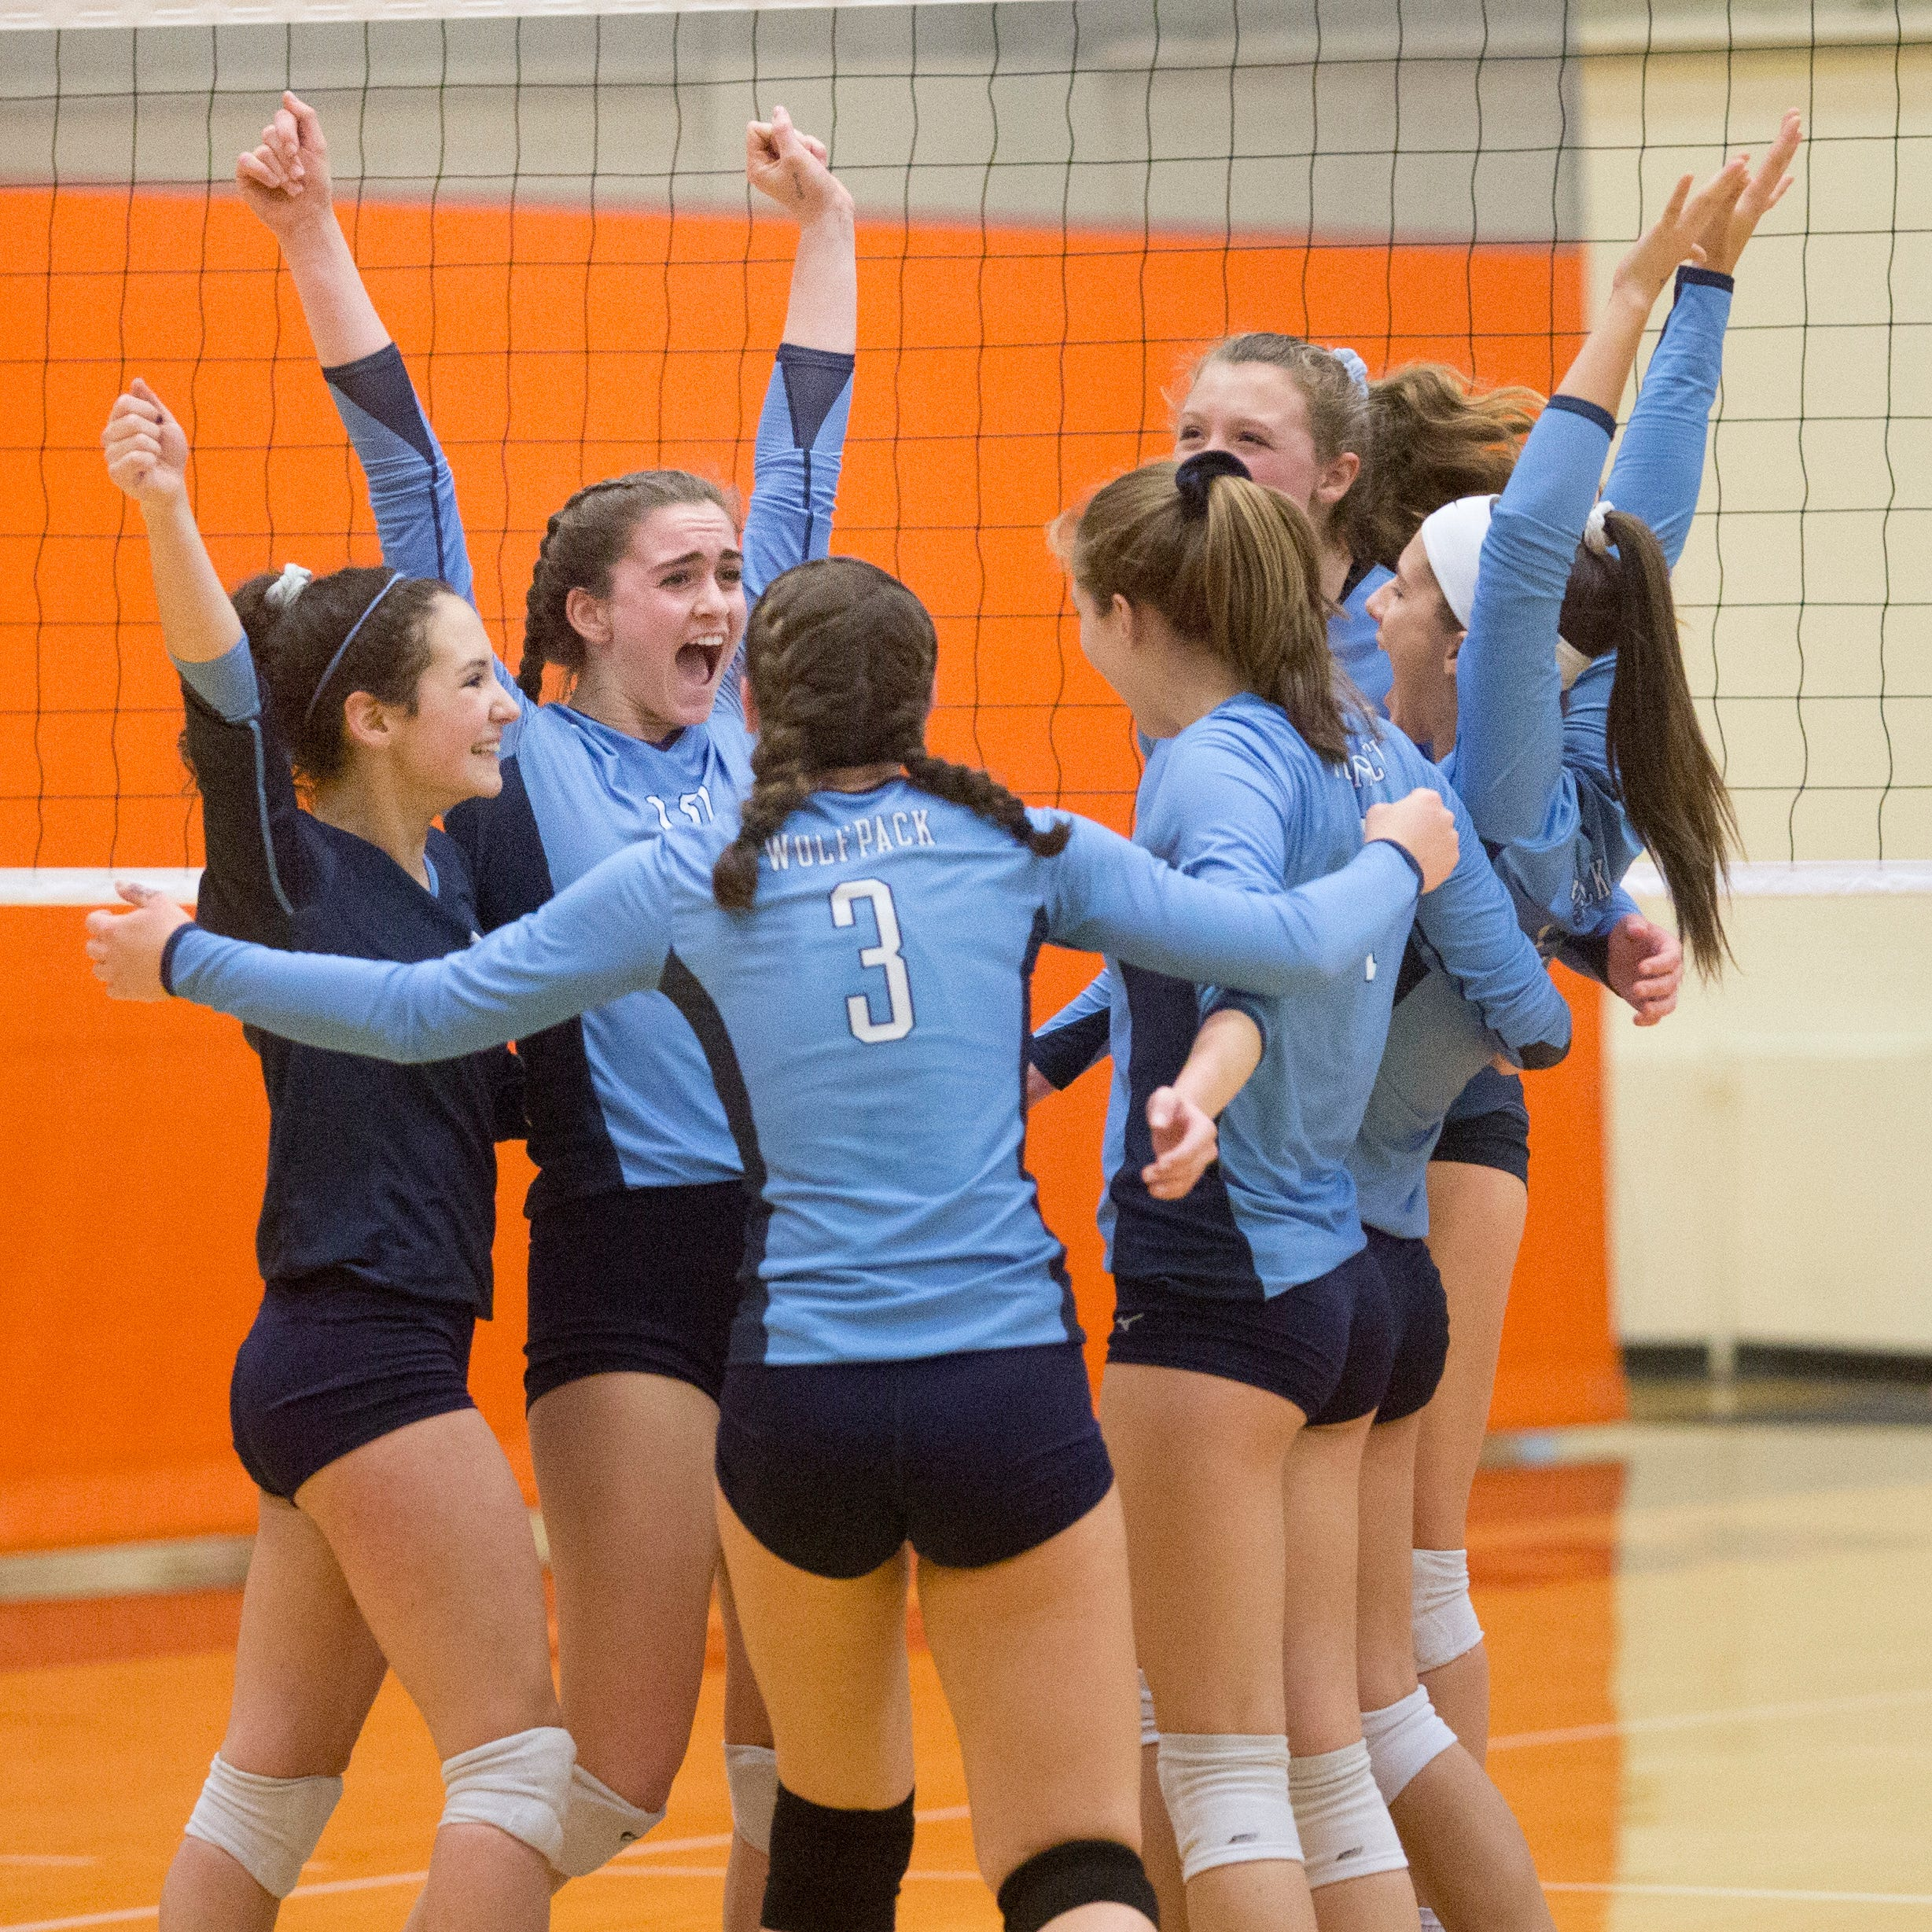 West Morris  upsets Old Tappan to win Group III volleyball title